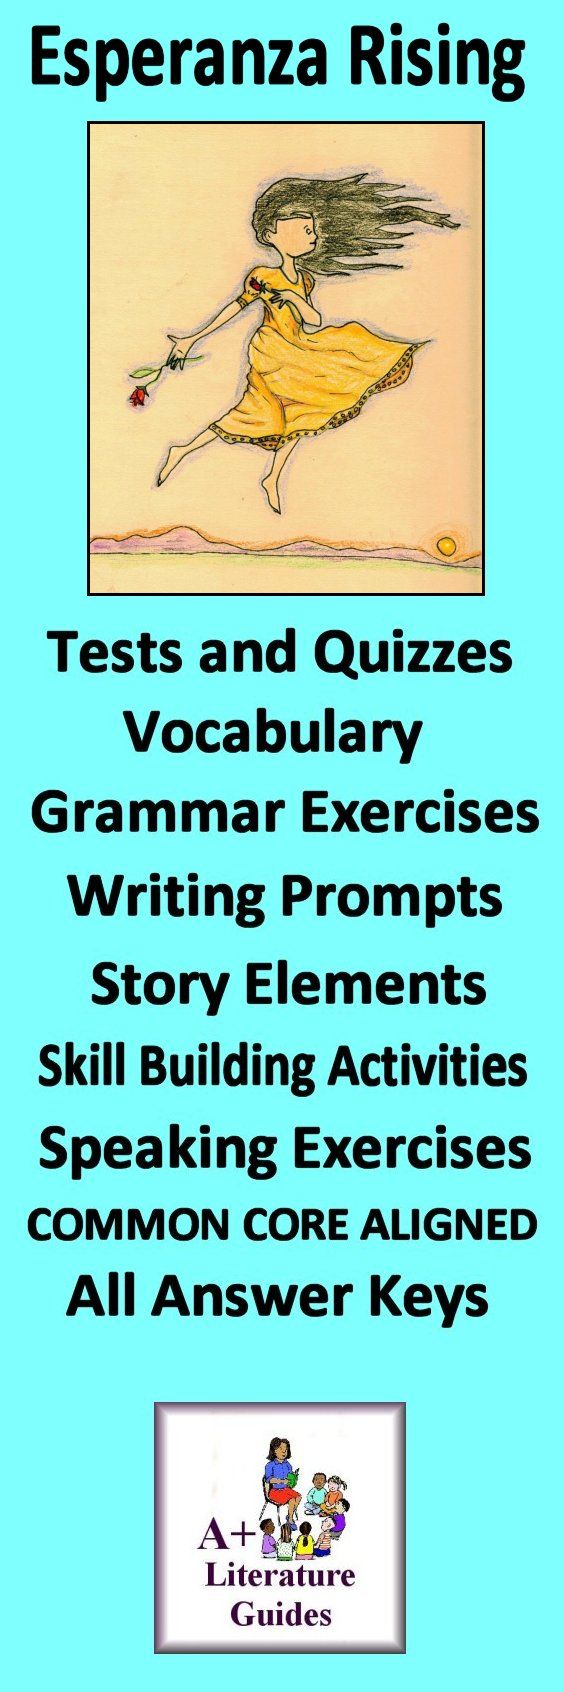 esperanza rising essay prompts Use these questions as writing prompts and to enhance discussions about esperanza rising by pam muñoz ryan.